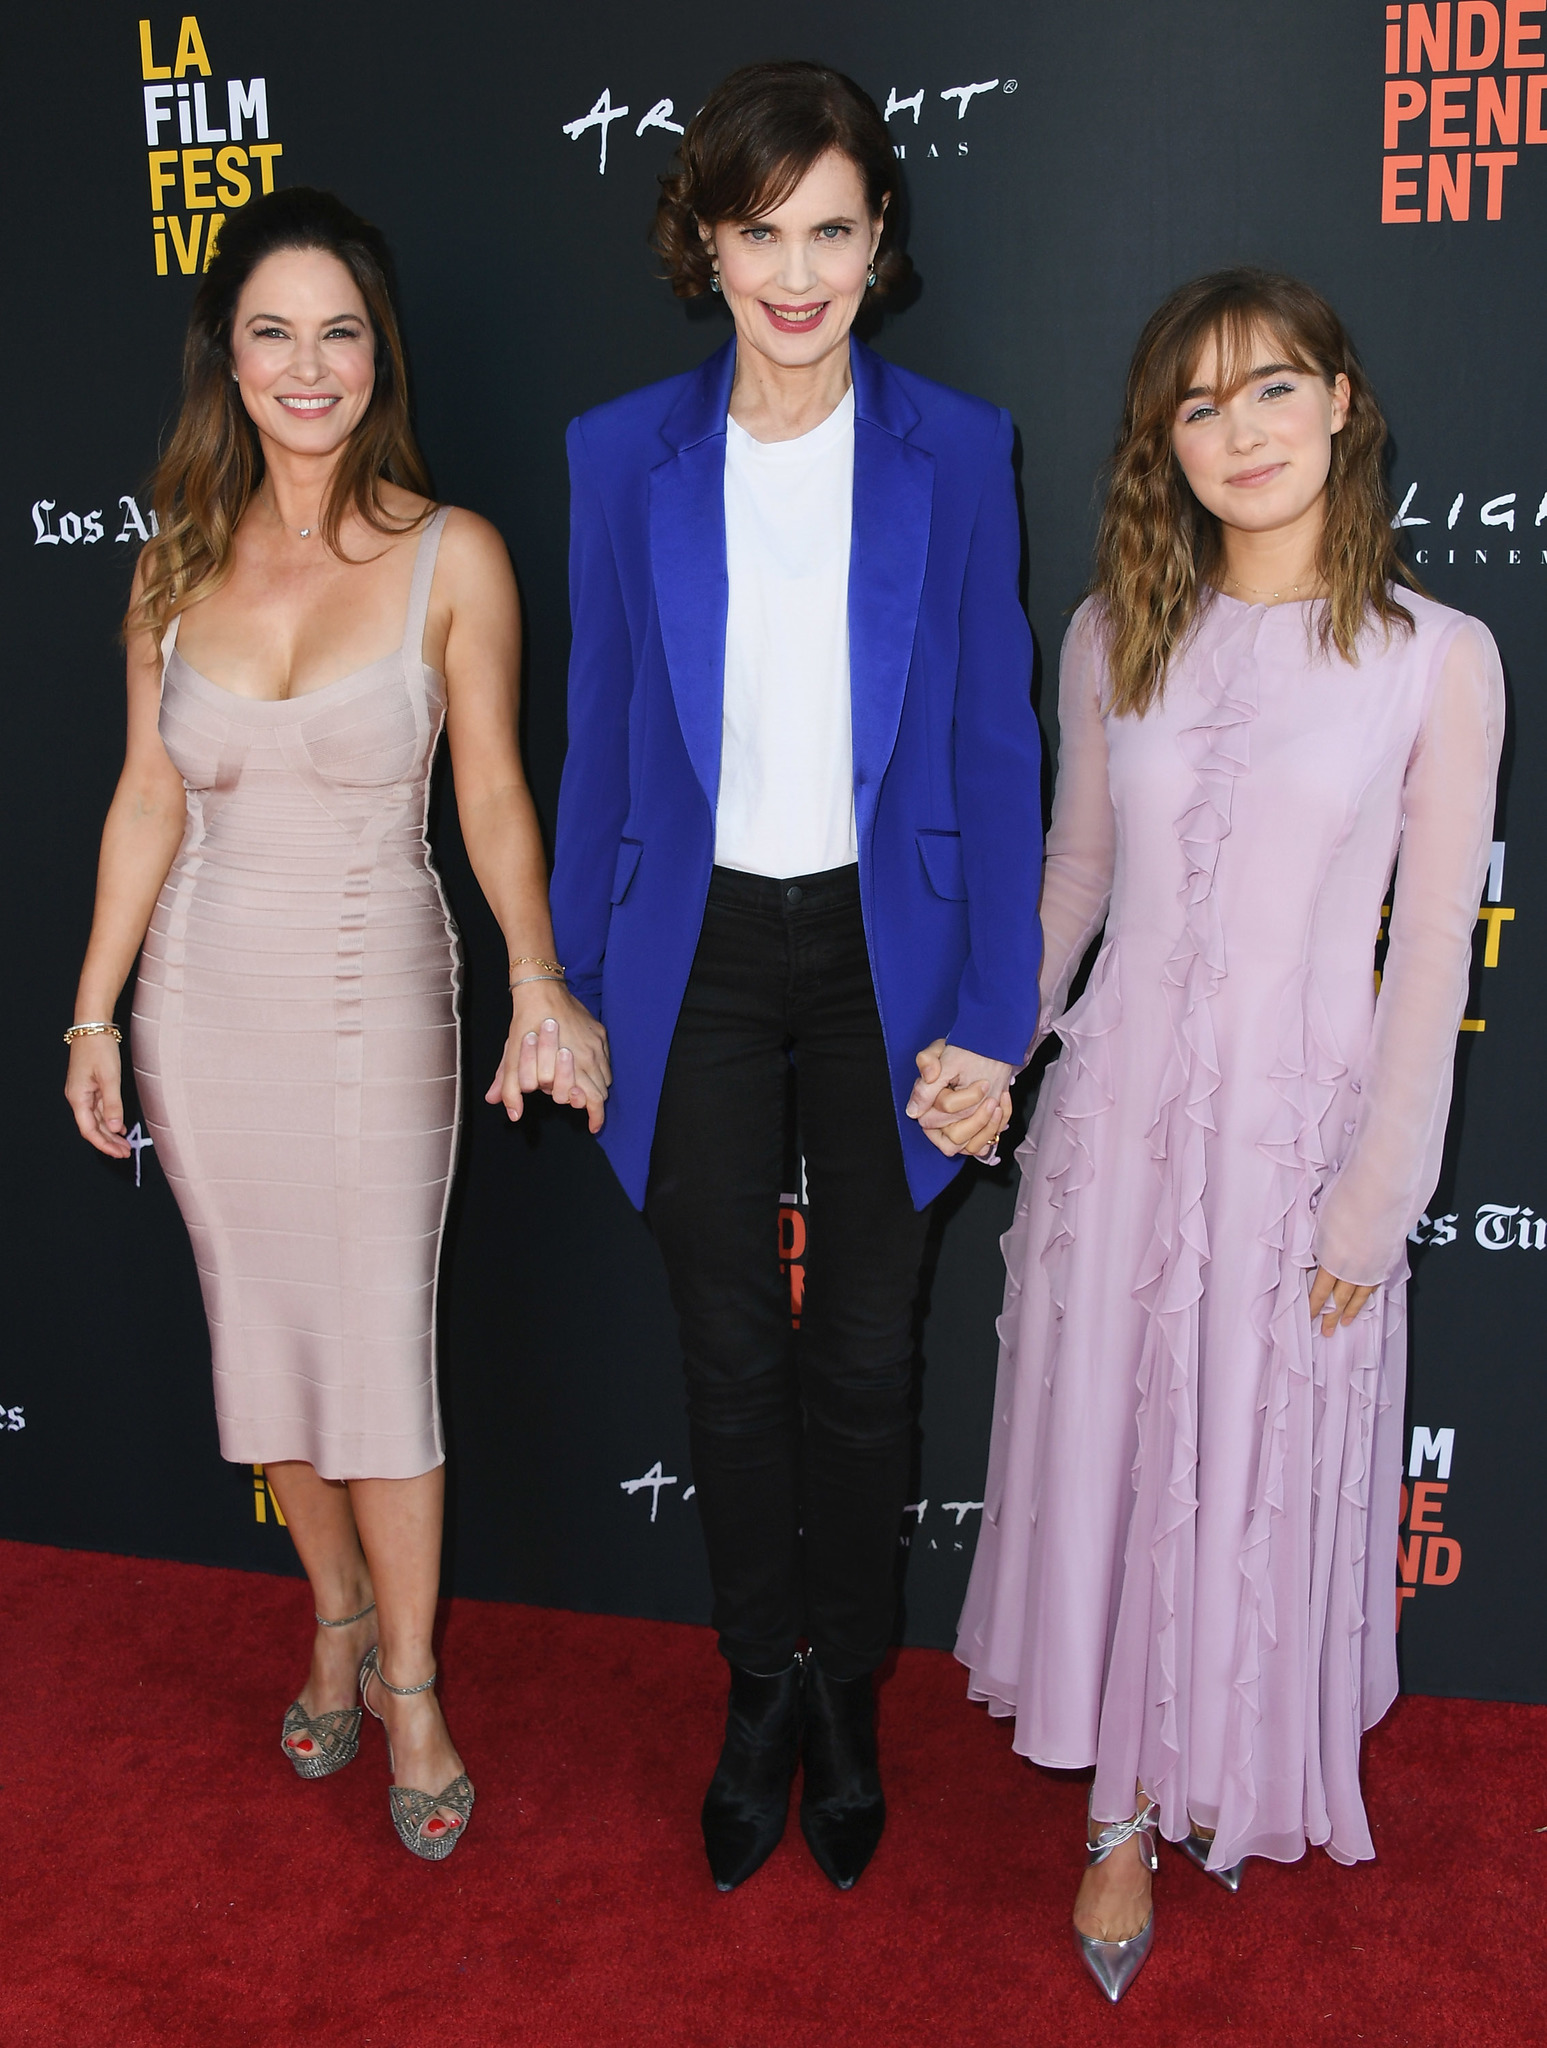 Elizabeth McGovern, Victoria Hill, and Haley Lu Richardson